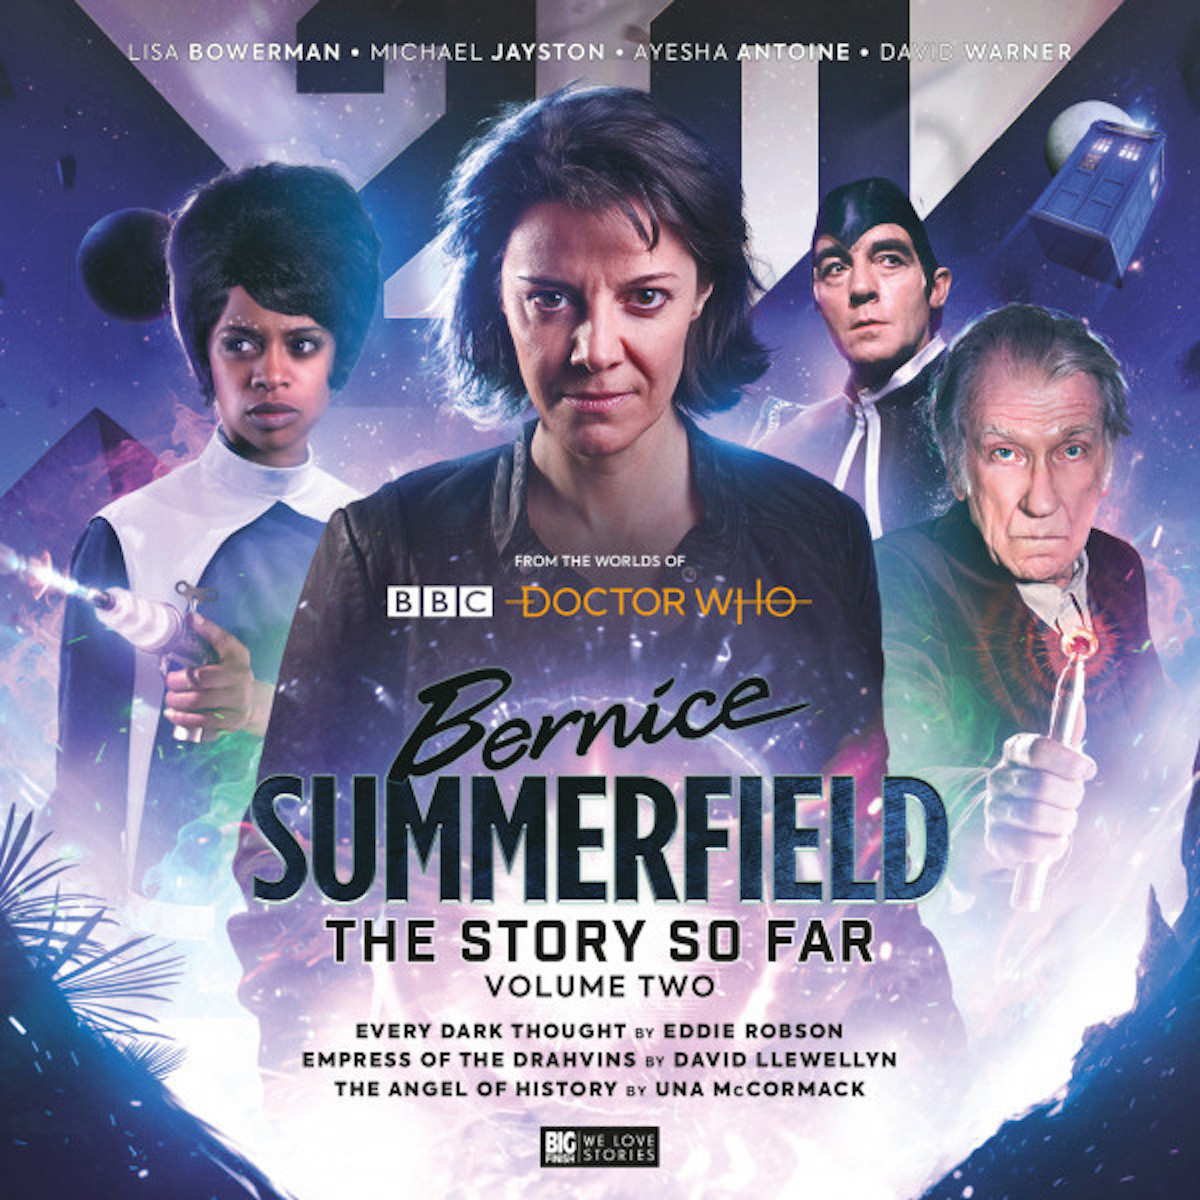 Bernice Summerfield: The Story So Far Volume 2